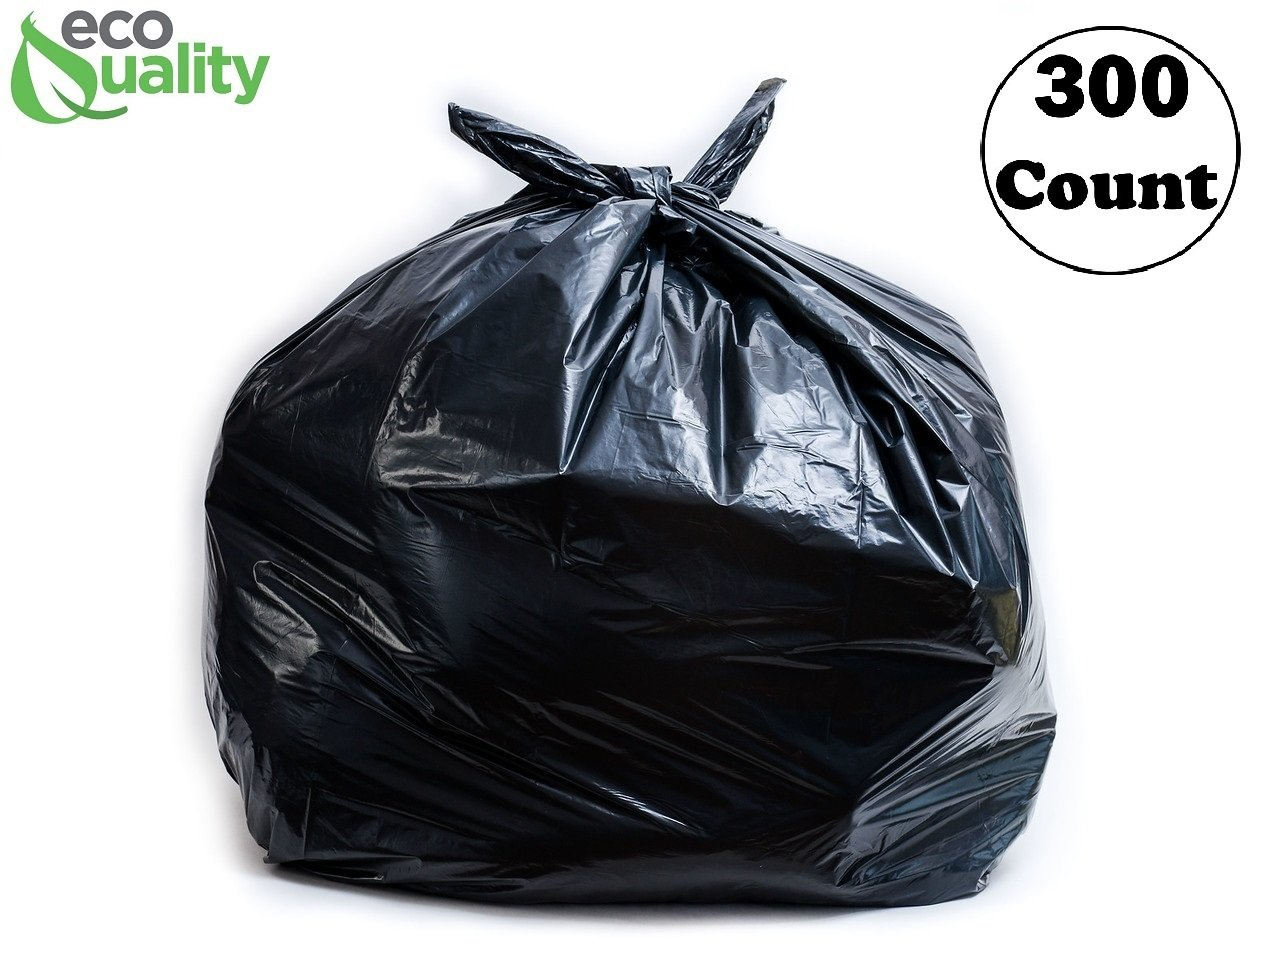 Strong Trash Bags, Wastebasket Receptacle Can Liner, Large 40-45 Gallon by EcoQuality, 300 Count, 40 x 38, Garbage Bags, Black, for Kitchen, Household, Industrial, Multi Purpose, Office, Backyard